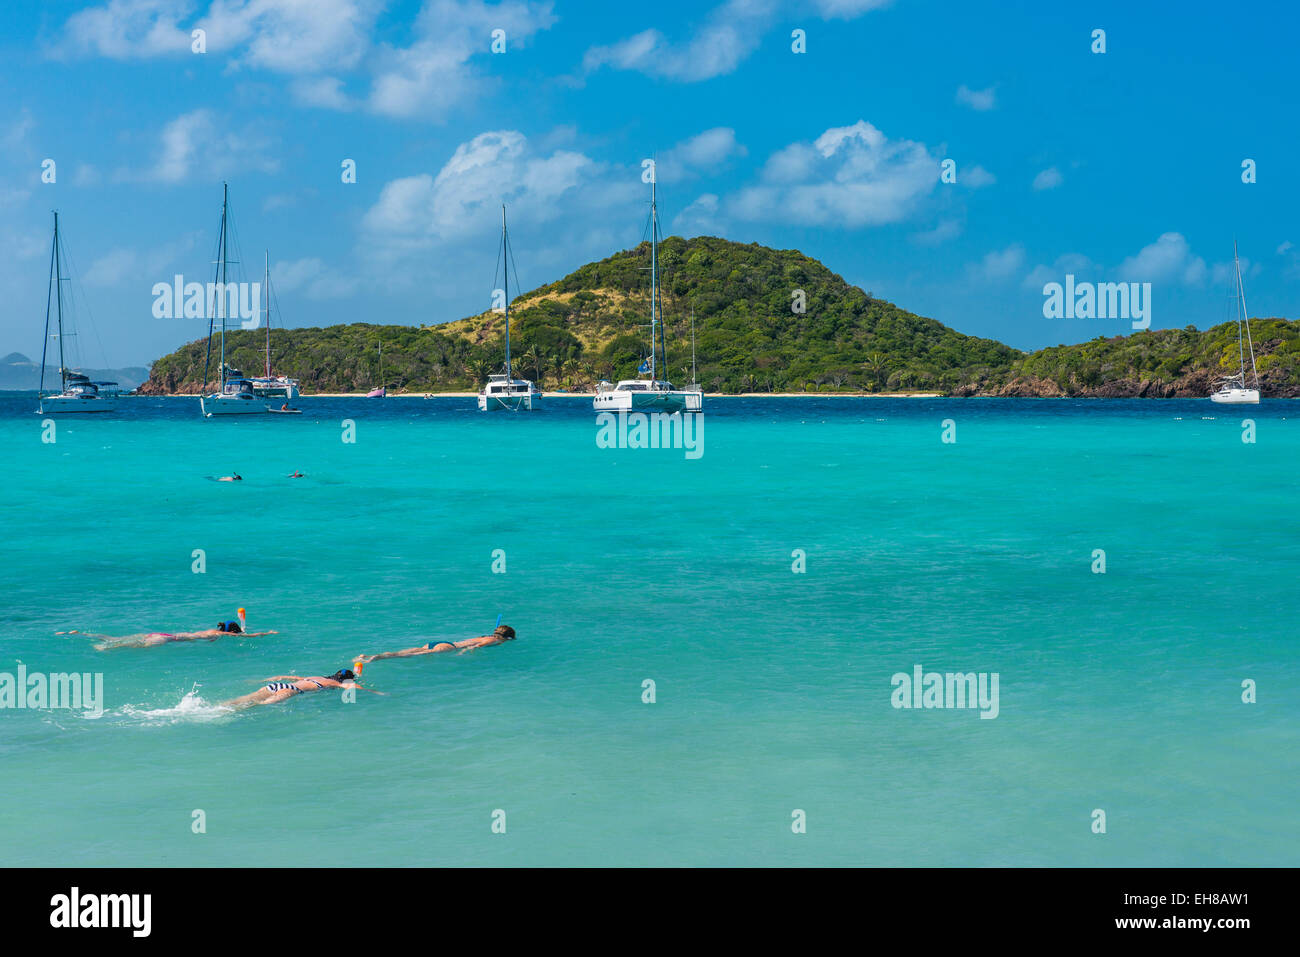 Tourists snorkeling in the turquoise waters of the Tobago Cays, The Grenadines, Windward Islands, West Indies, Caribbean - Stock Image